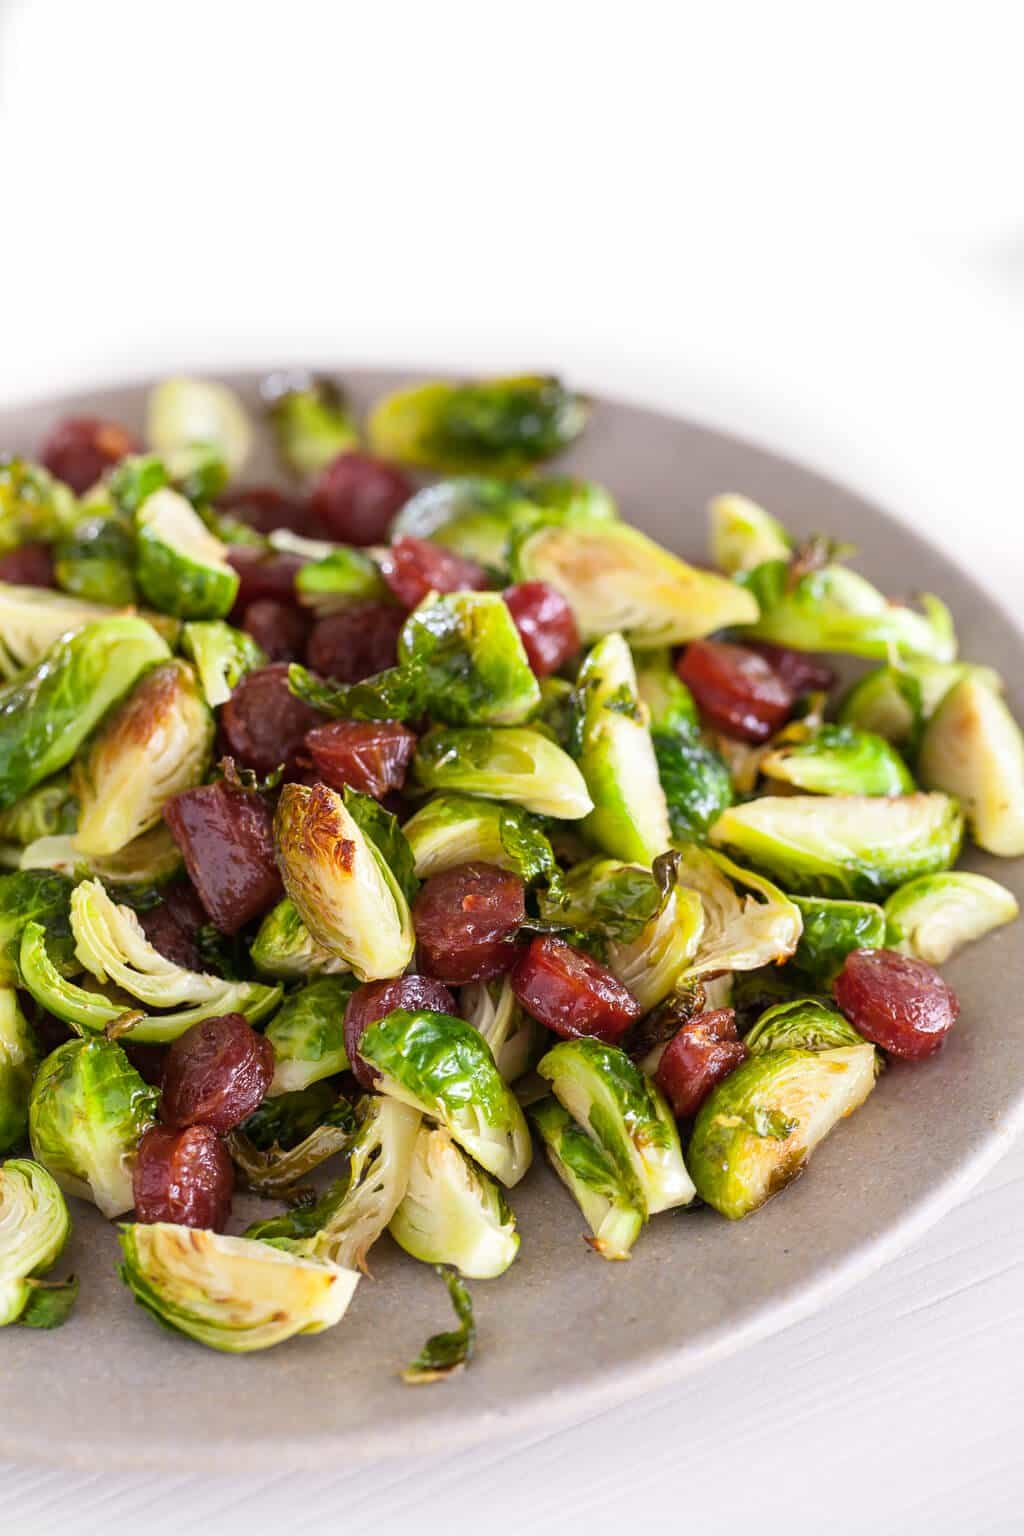 Roasted Brussels Sprouts with Chinese Sausage Recipe